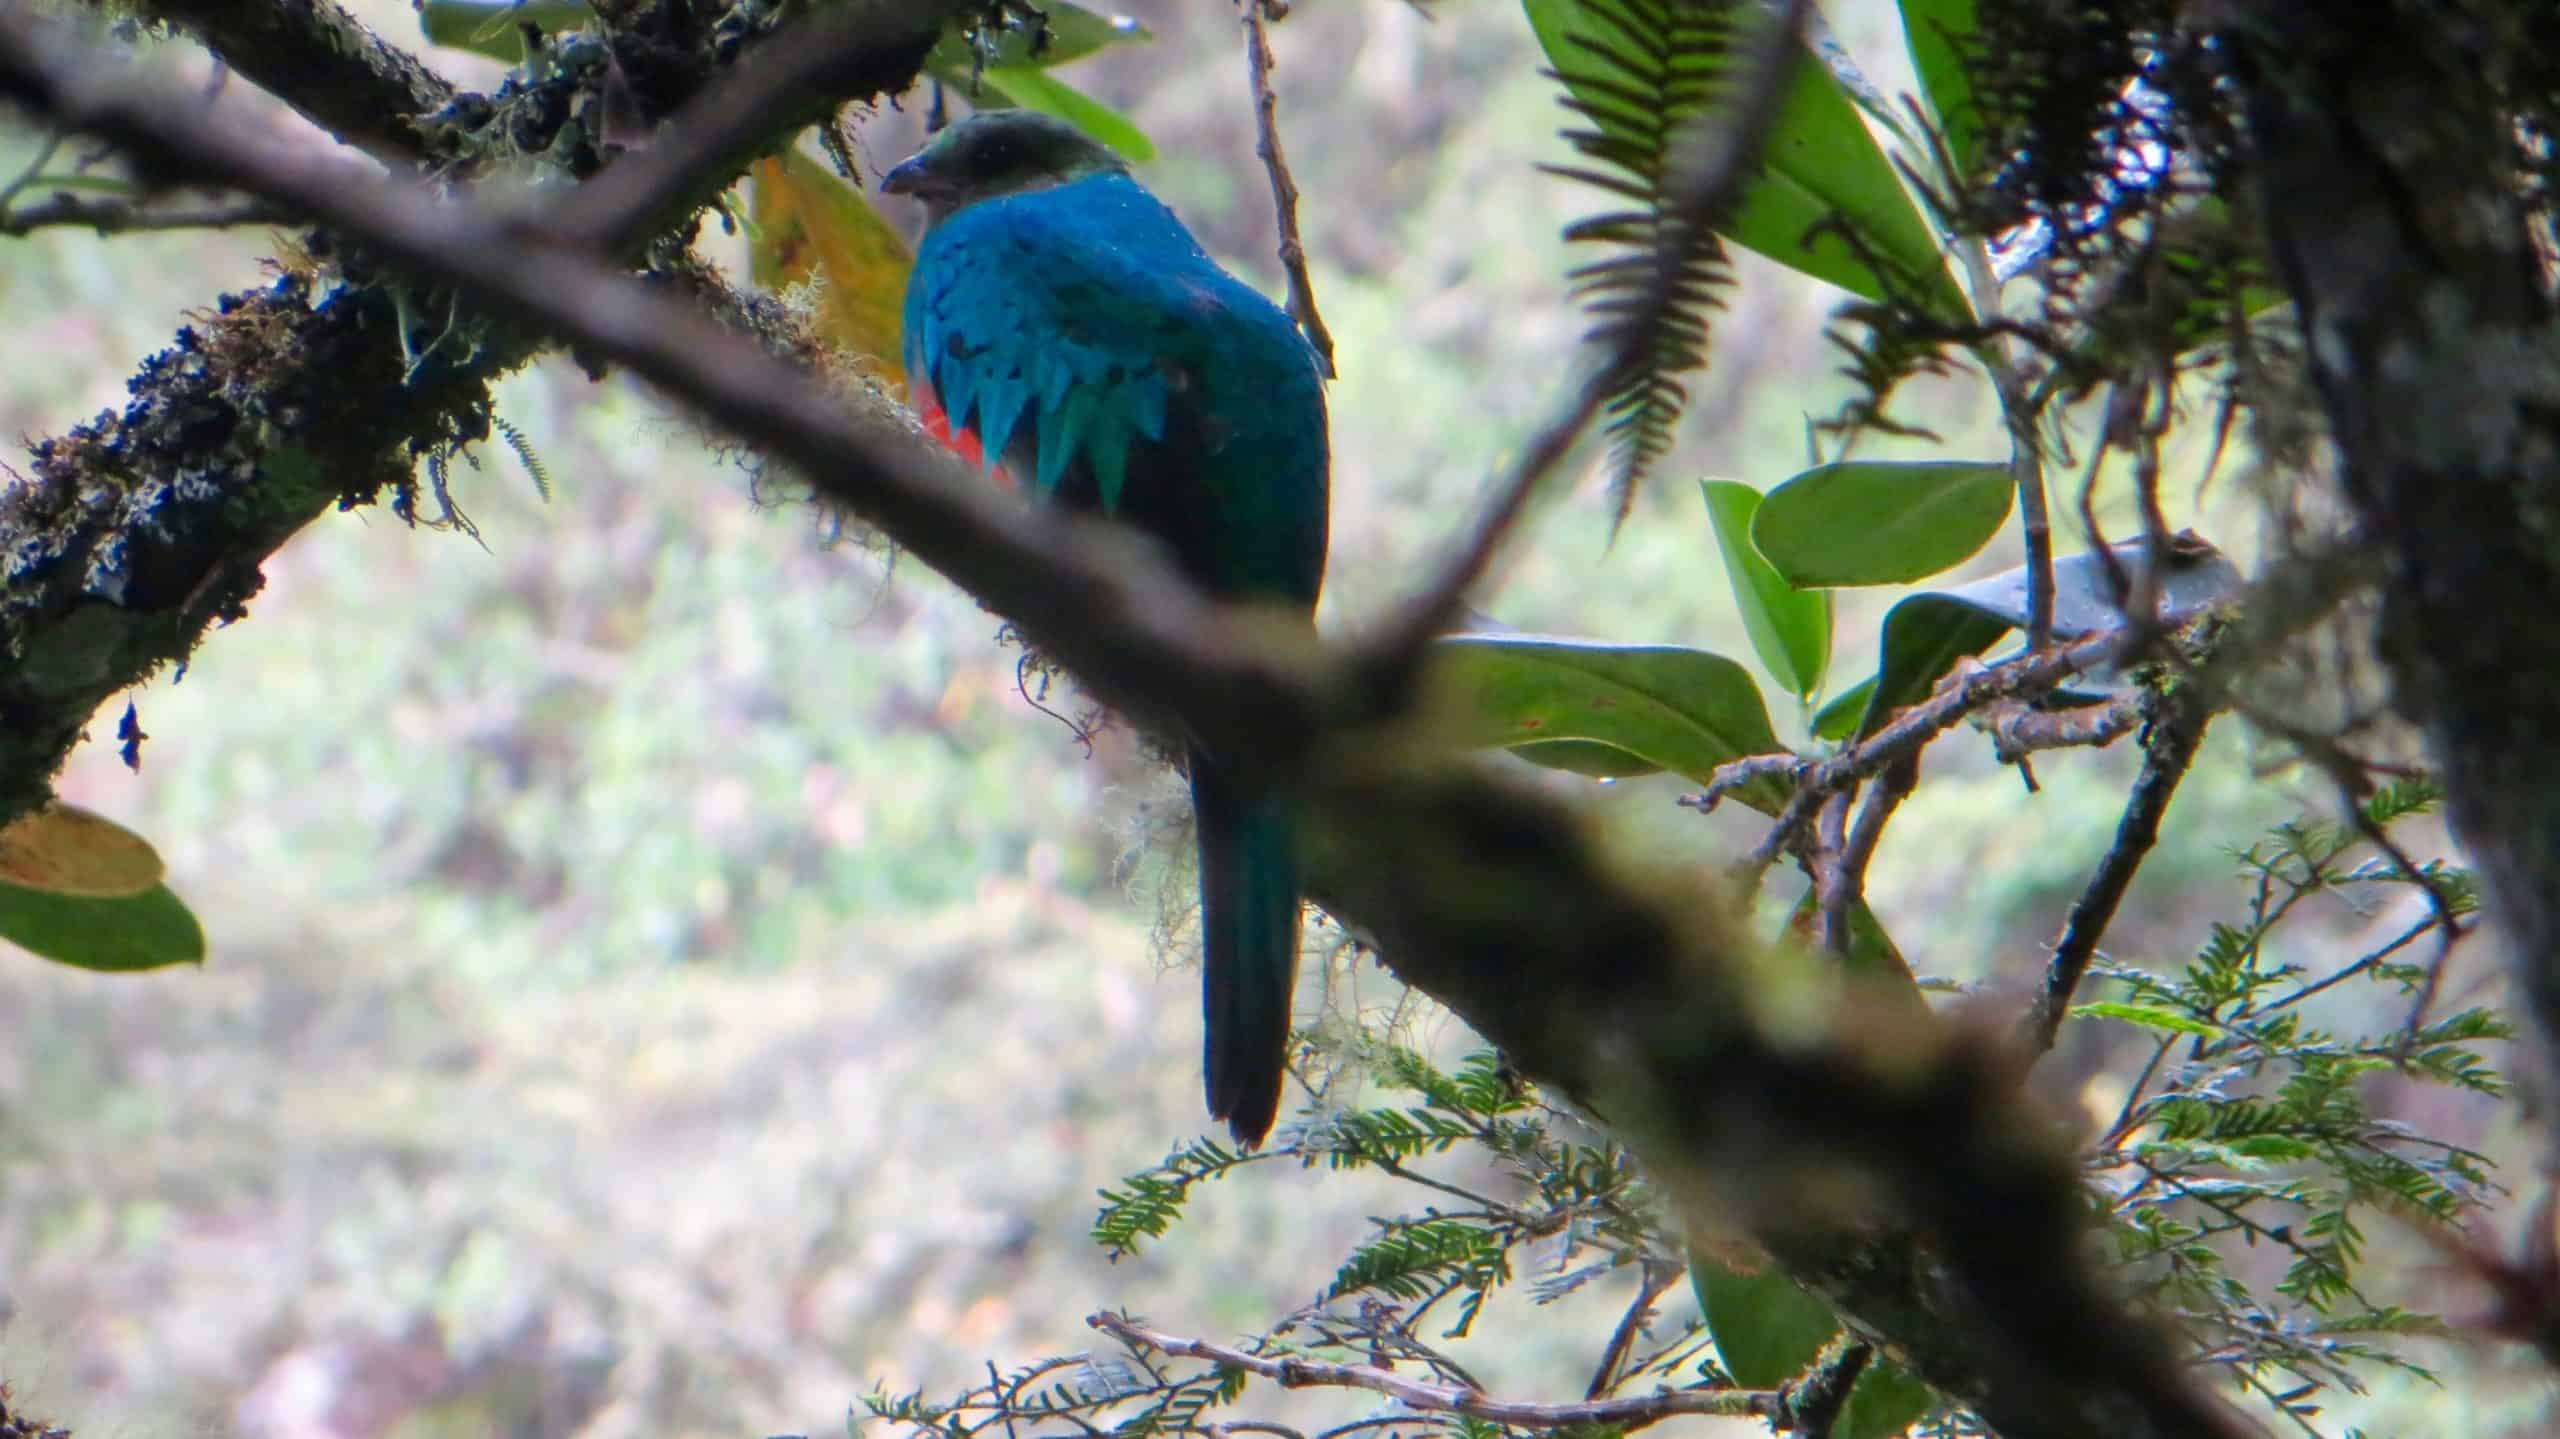 8Jesus and his family spot a quetzal